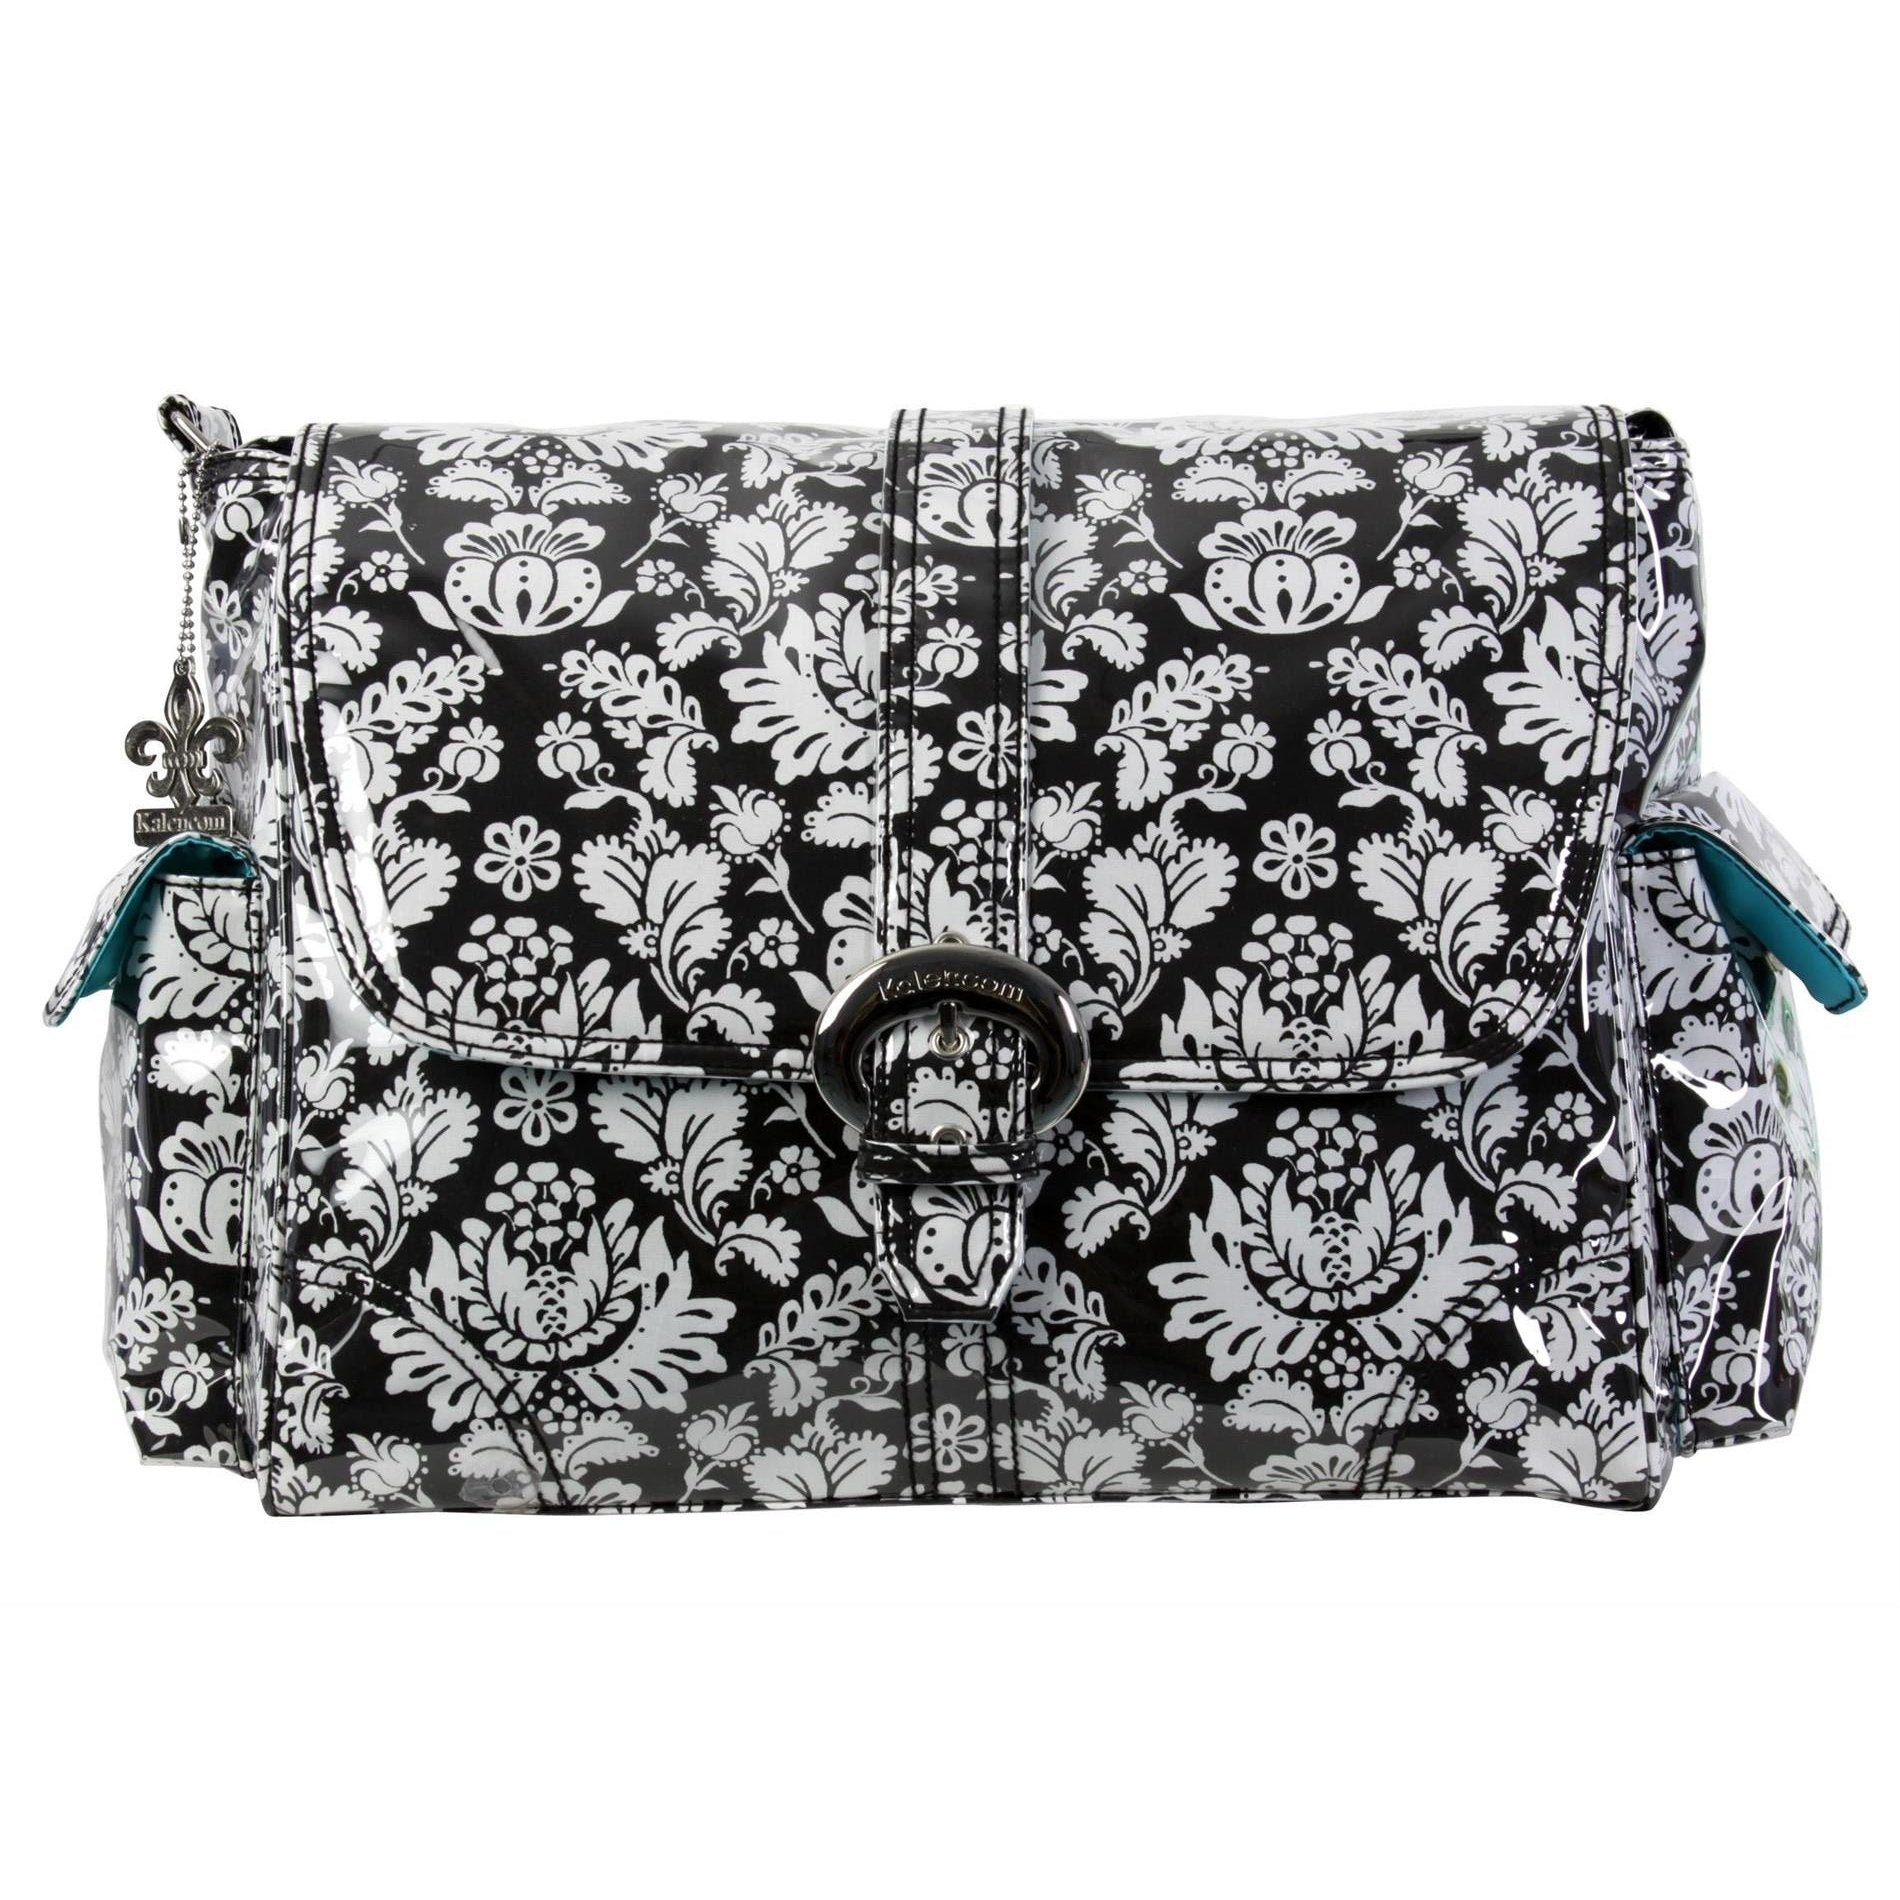 Toile Black & White Laminated Buckle Diaper Bag | Style 2960 - Kalencom-Diaper Bags-Jack and Jill Boutique